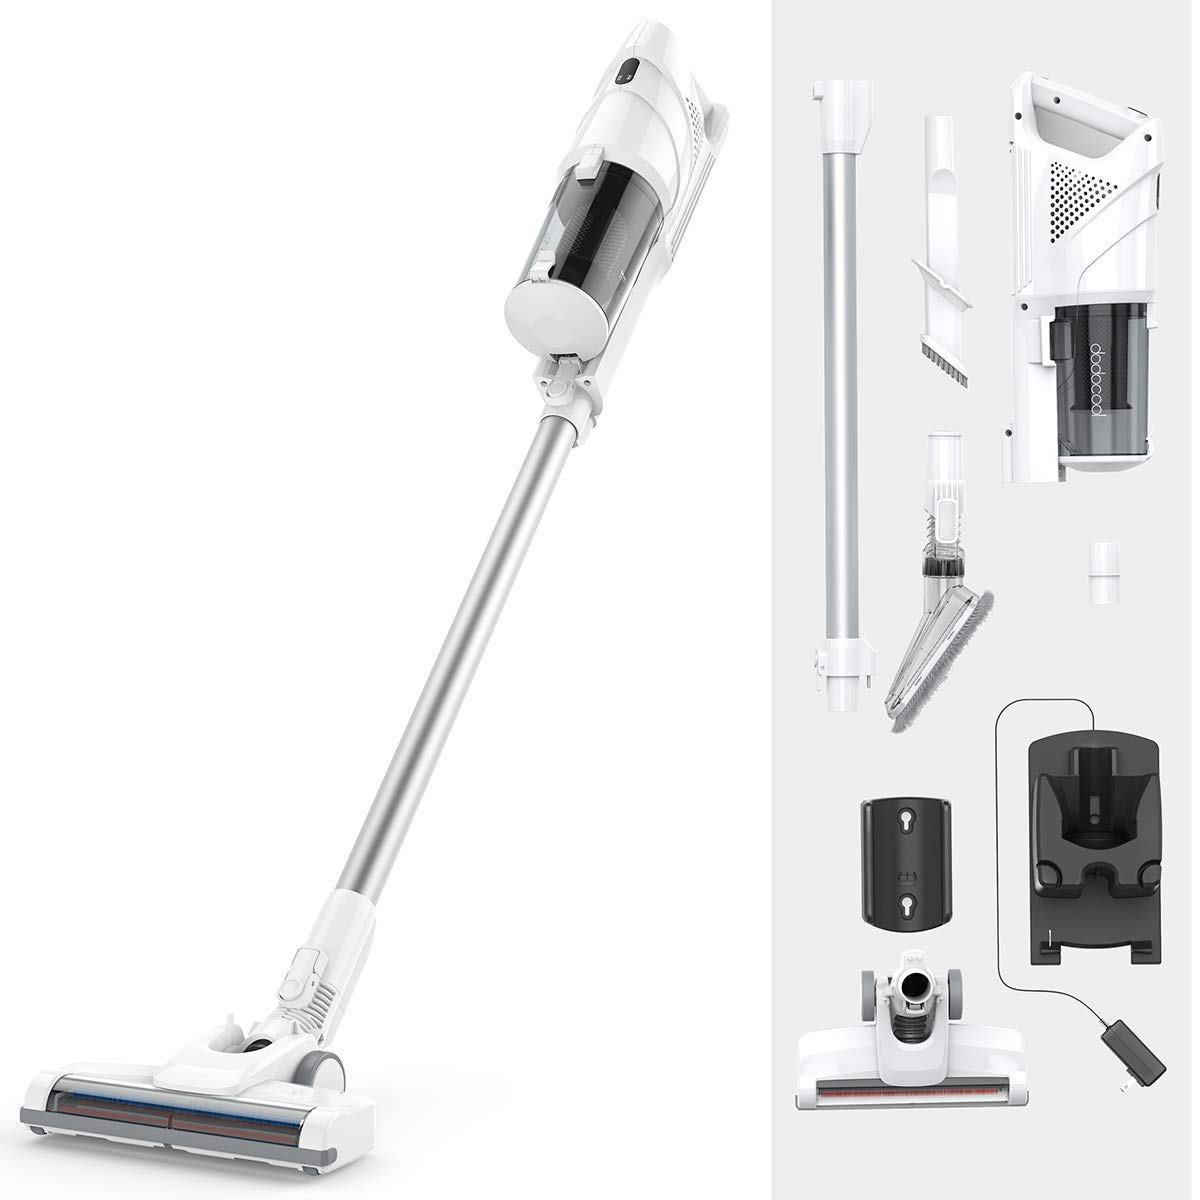 dodocool Upright Cordless Vacuum Cleaner, Bagless 2 in 1 Handheld Vacuum Cleaner with Power 2200mAh Rechargeable Battery, Lightweight Design Crevice Tool Brush Accessories for Home and Car Cleaning